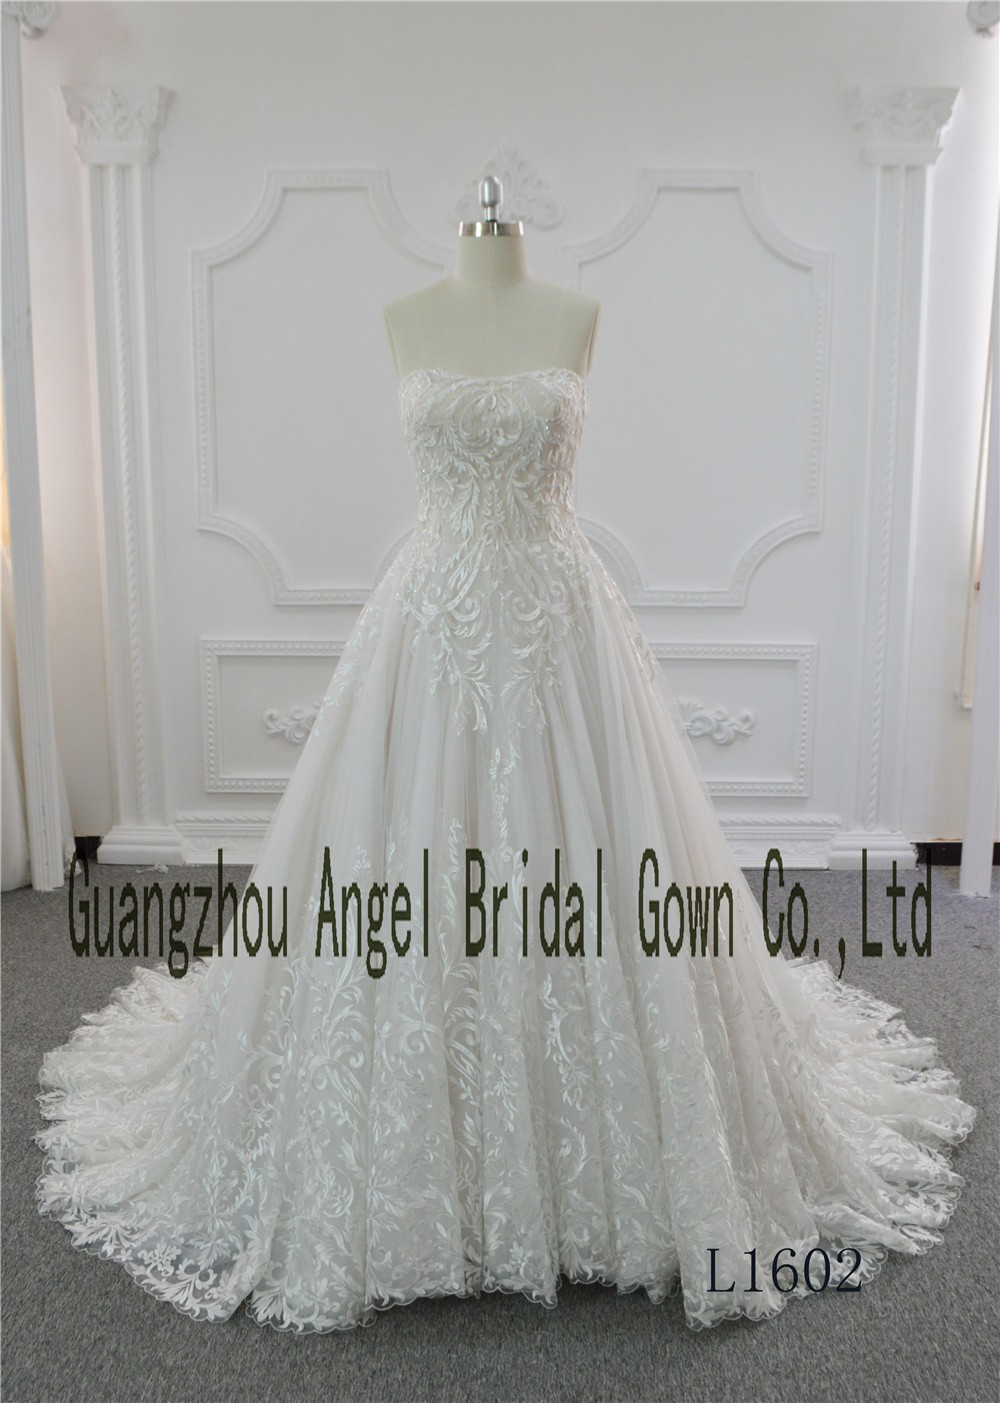 bridal gowns for pregnant brides